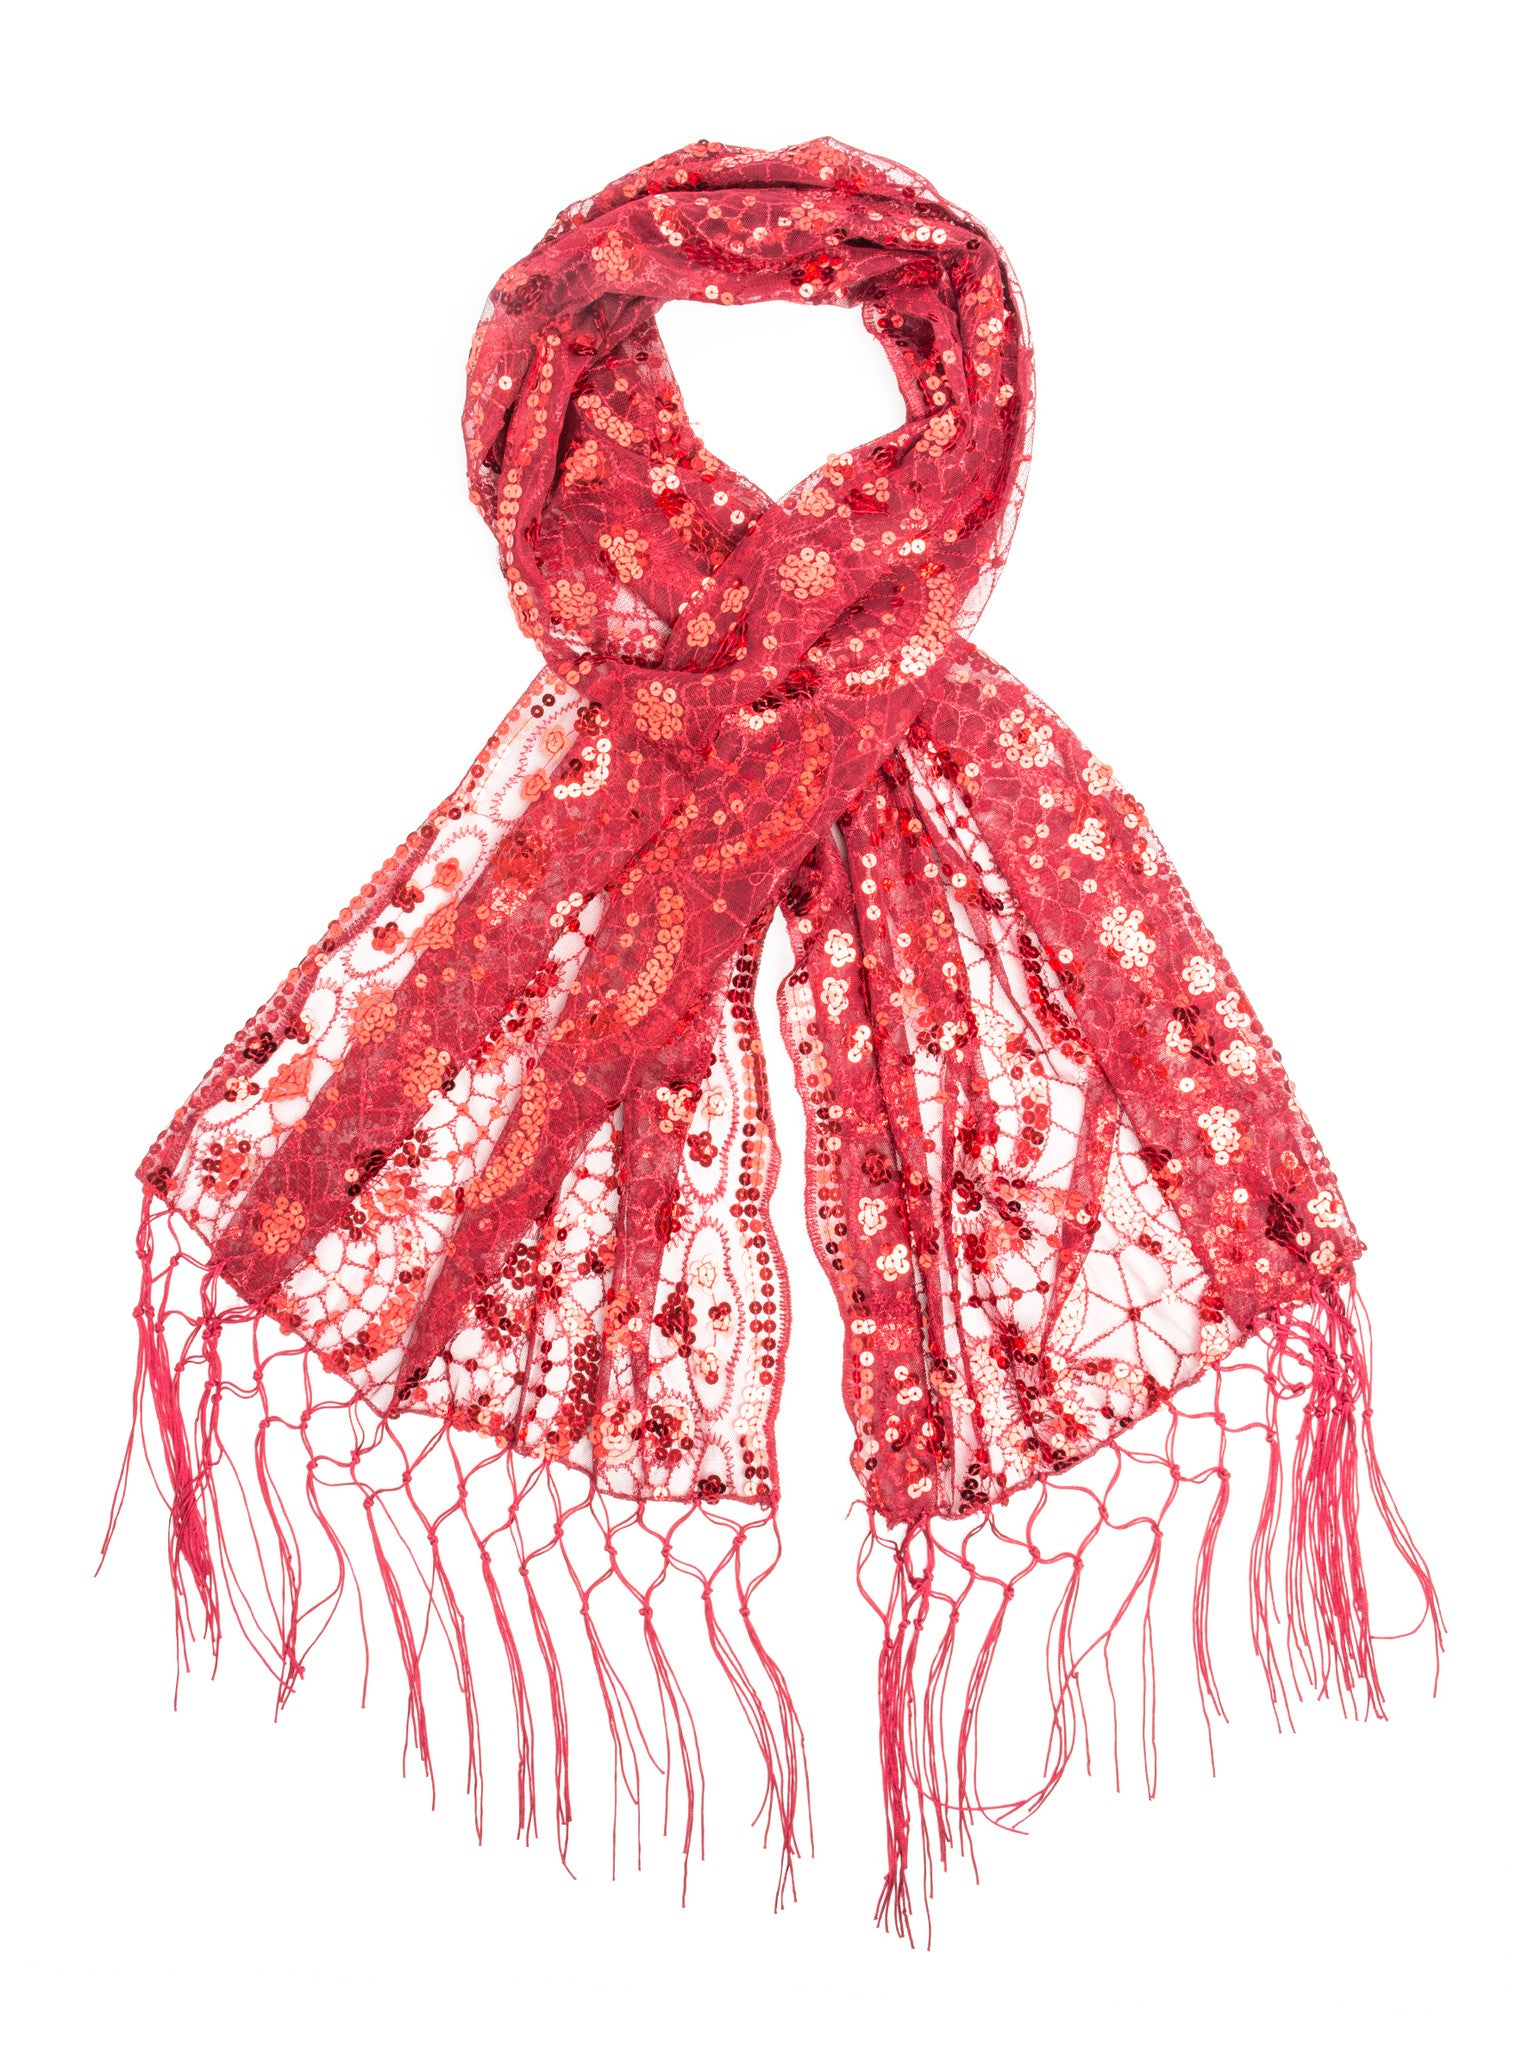 Scarves - Vera, Vintage Inspired Sequin Shawl, Evening Wrap, Embroidered Sequin Fringe Shawl or Scarf -(Red) Bohomonde  - 12